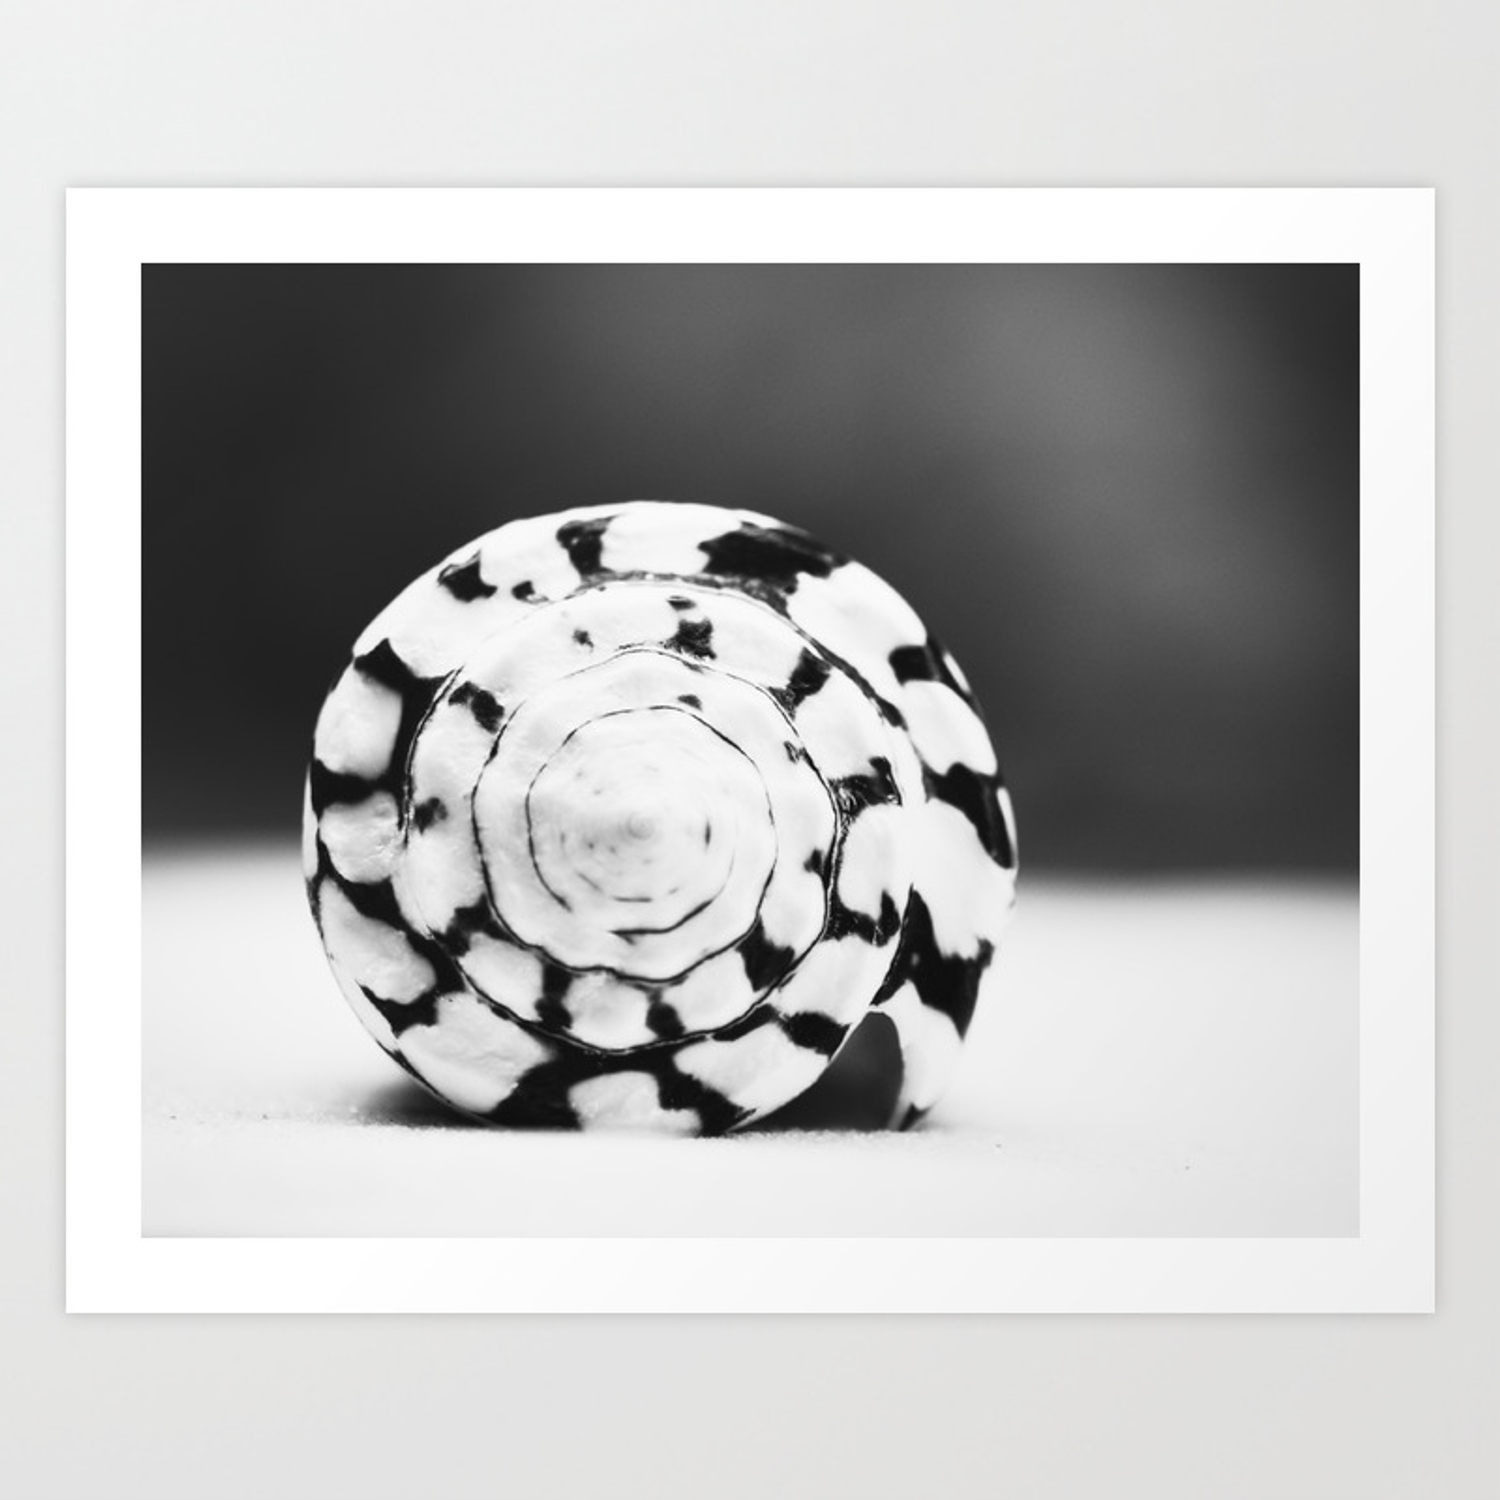 Black and white seashell photography shell photo neutral beach art black white coastal photo art print